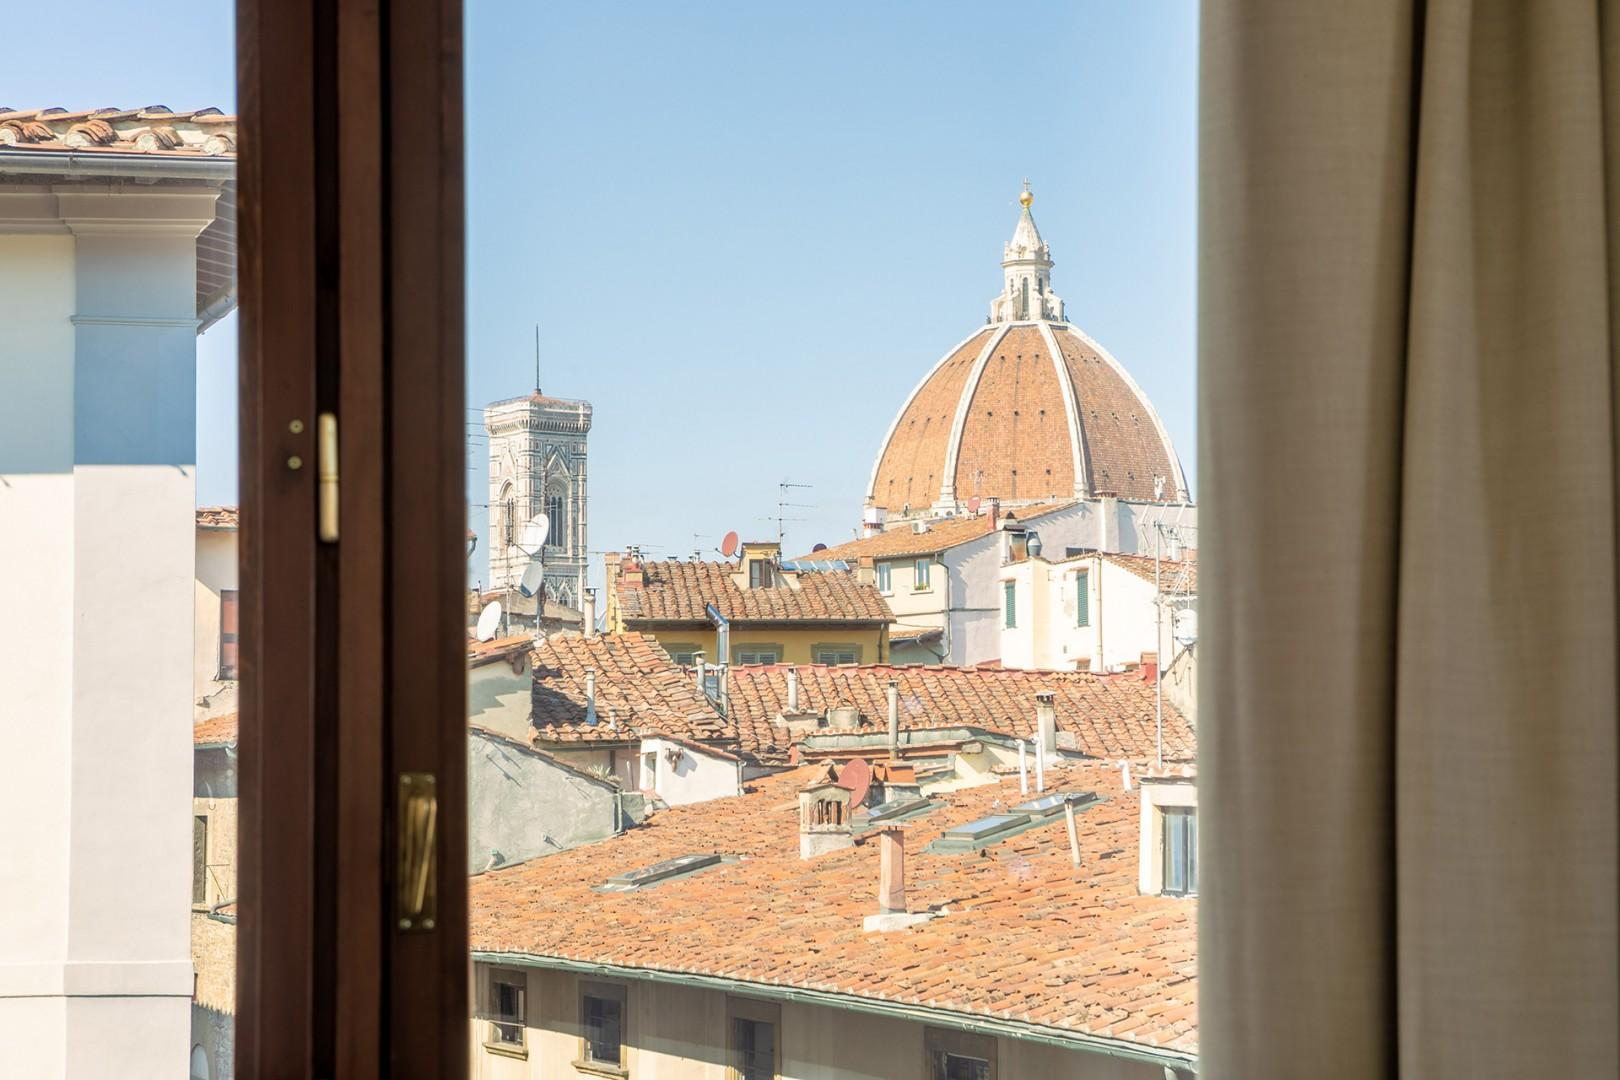 Spectacular view of the Duomo from the living room.